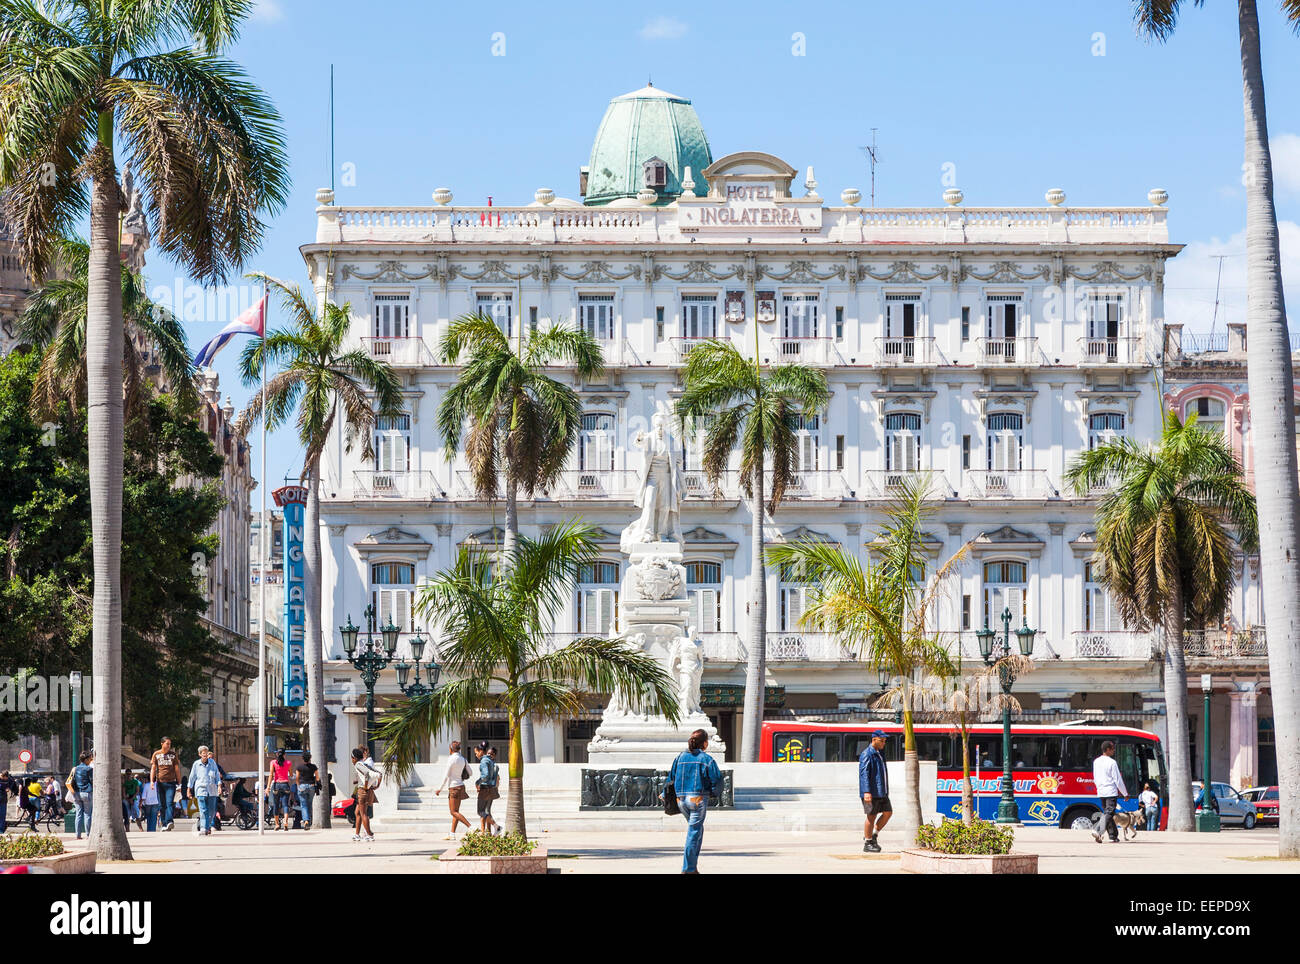 View of the classical frontage of Hotel Inglaterra, the oldest hotel in Cuba, with statue of Jose  Marti, at Parque - Stock Image